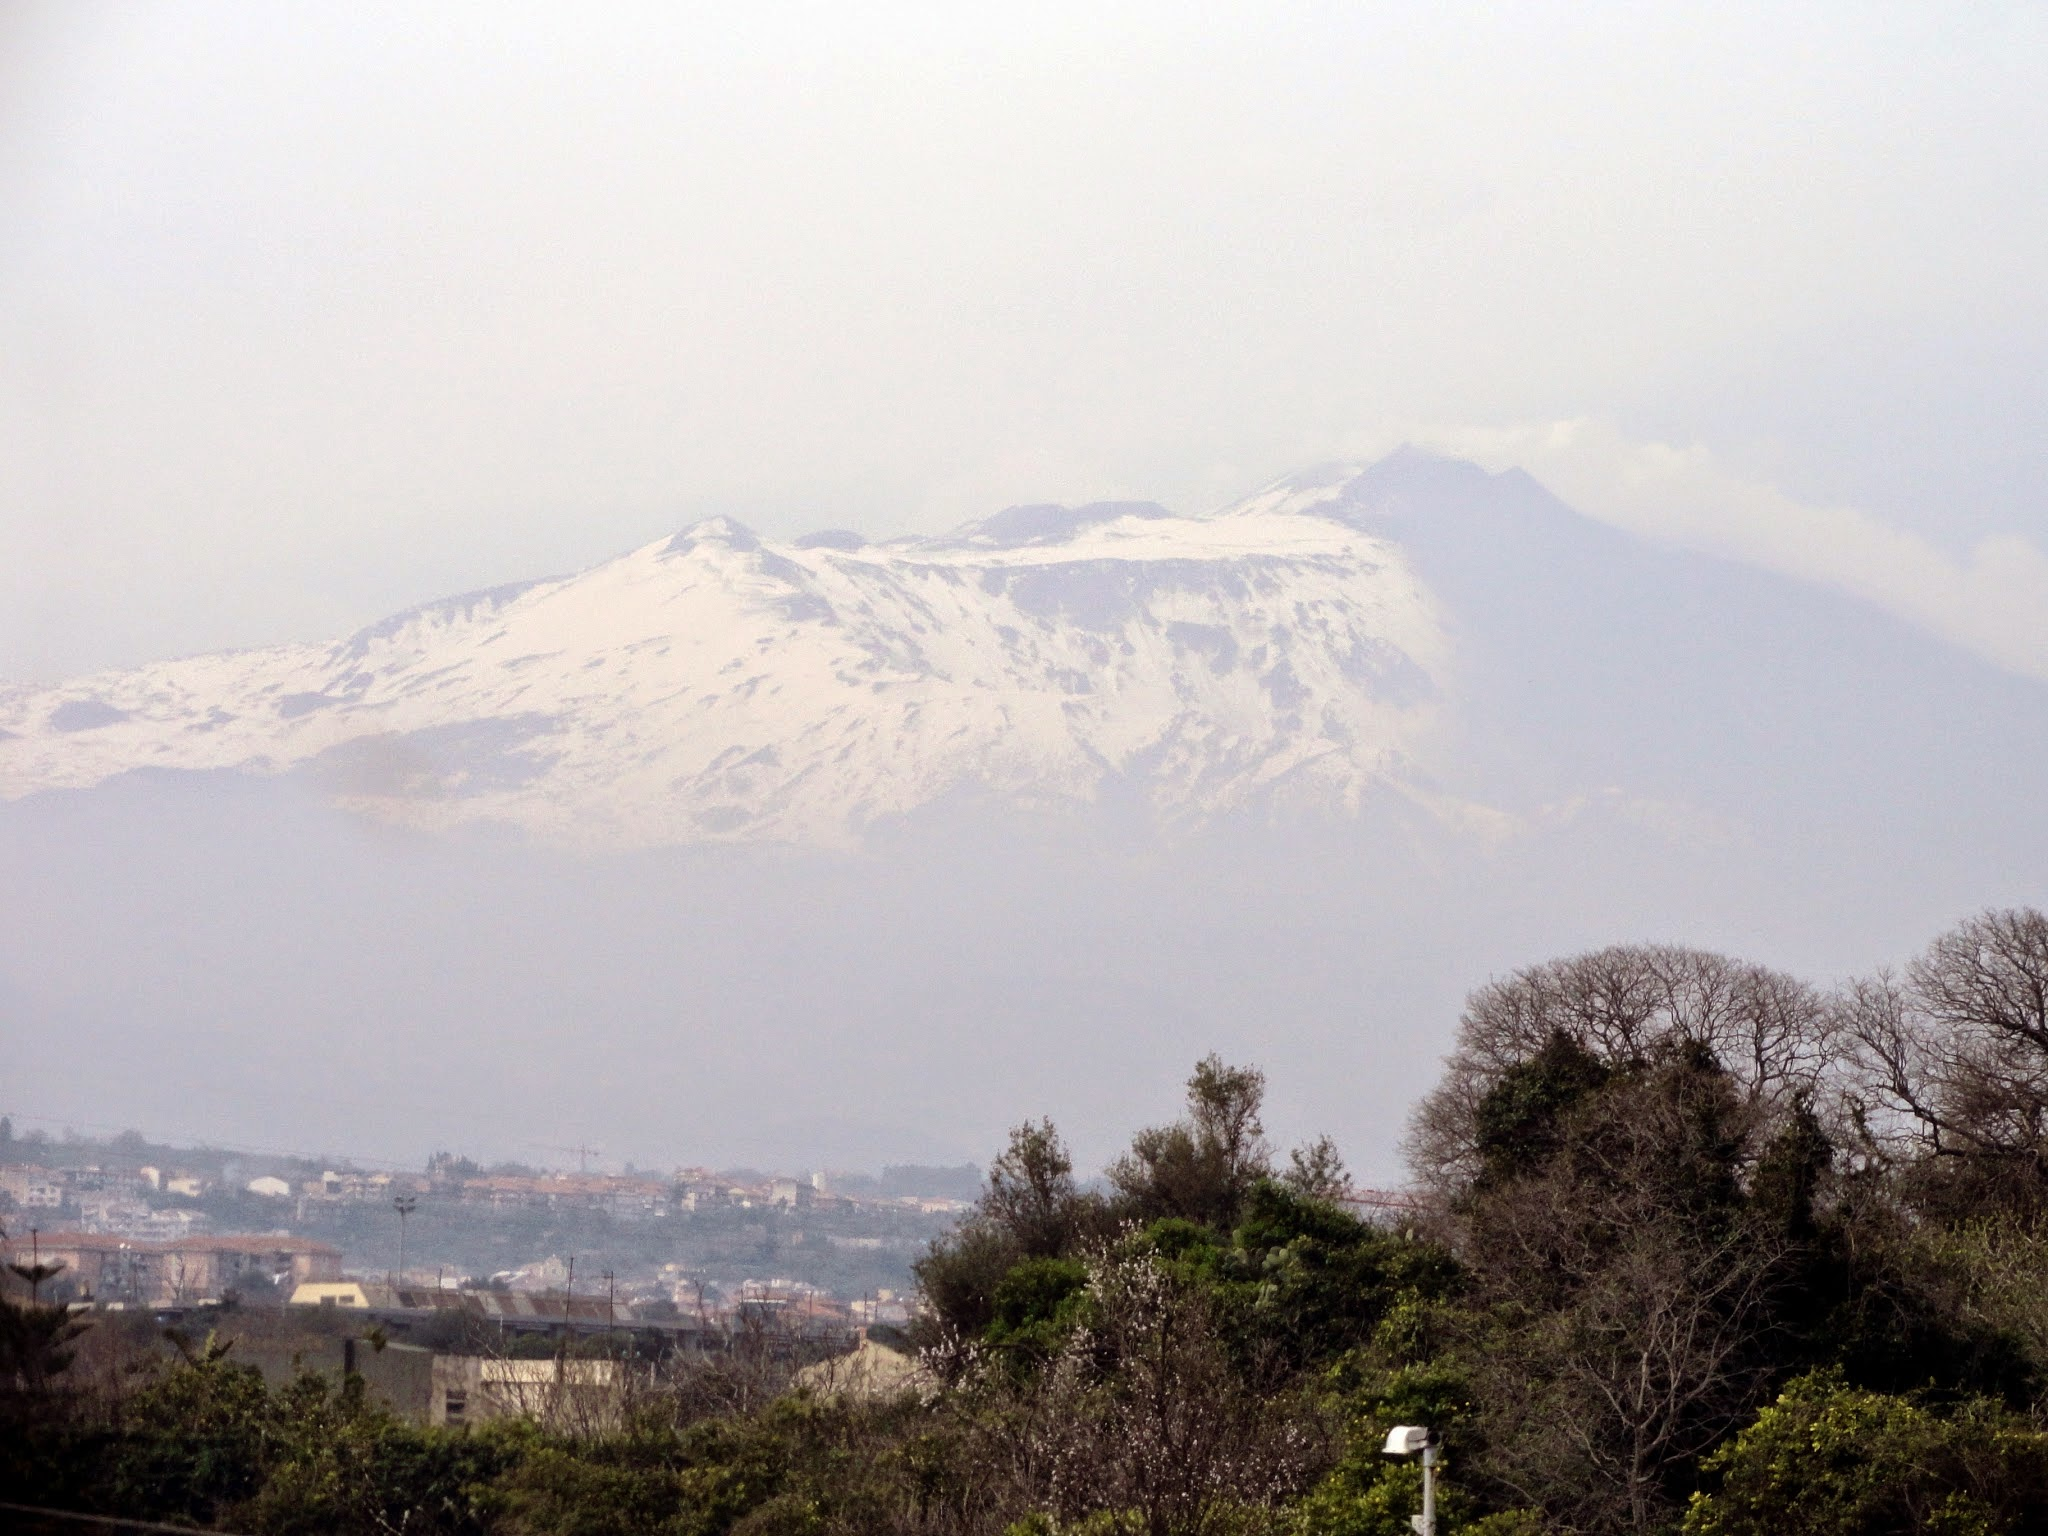 Mt. Etna is located in Sicily, Italy. ouritalianjourney